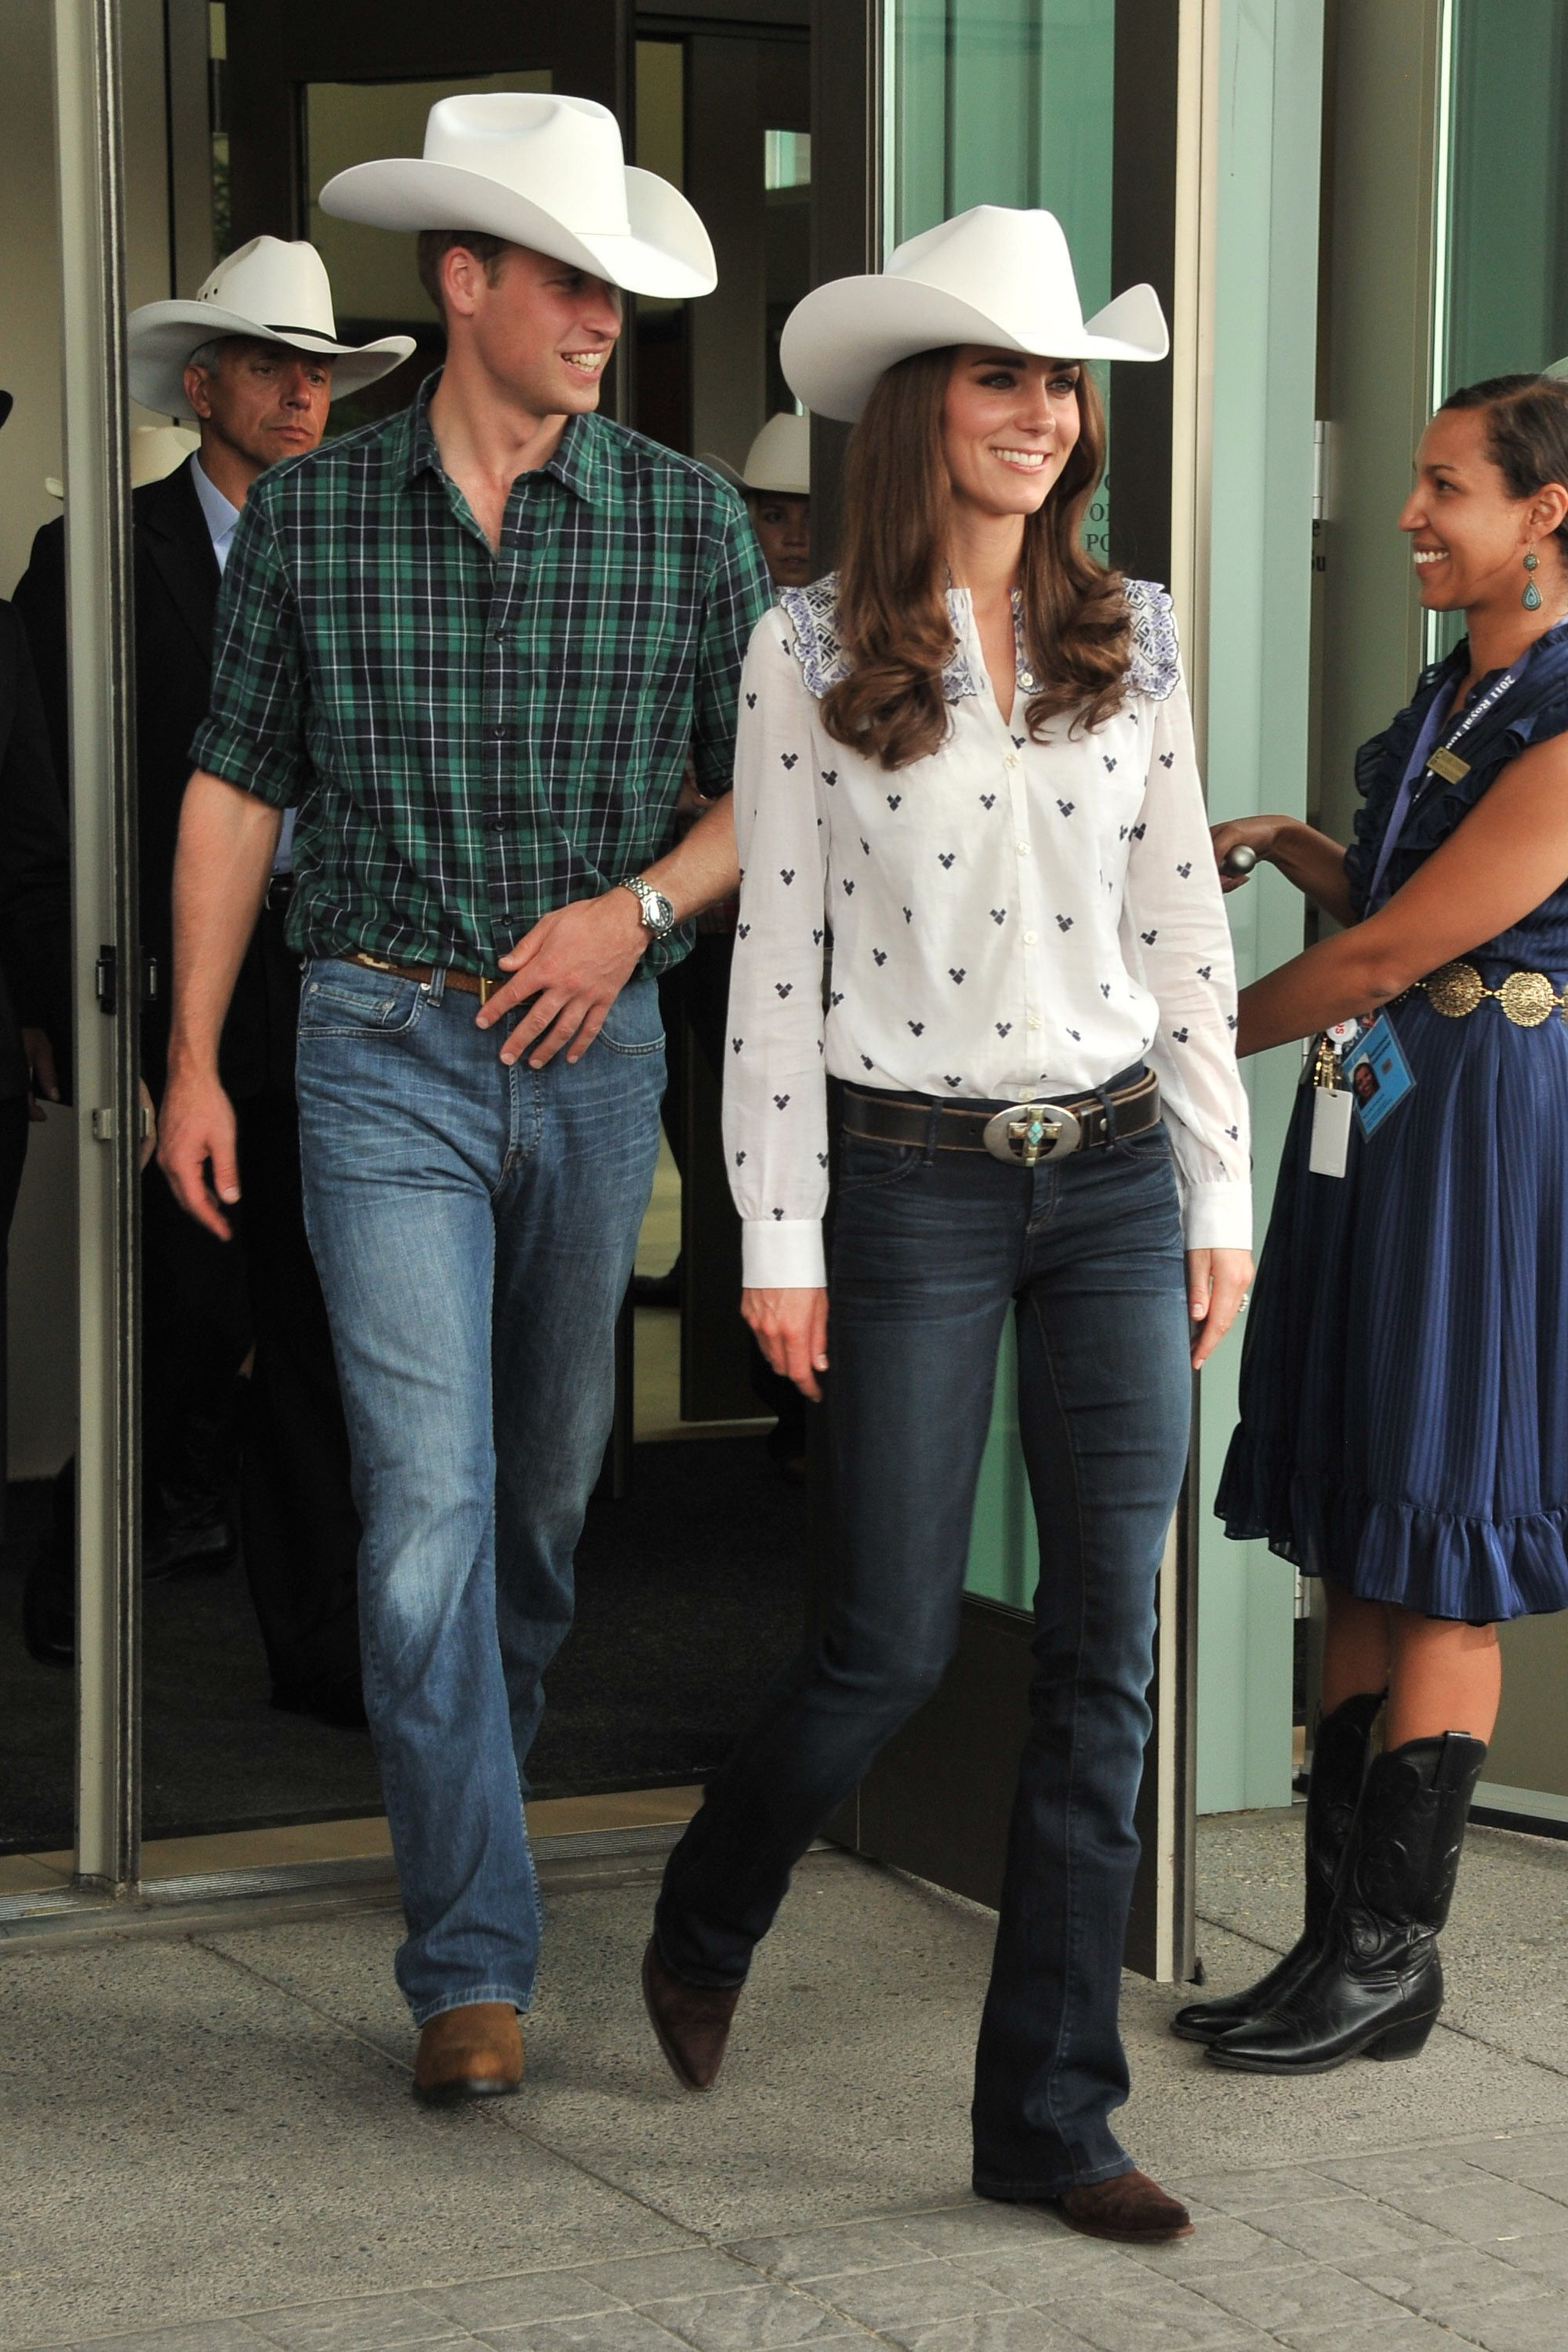 CALGARY, AB - JULY 07:  Prince William, Duke of Cambridge and Catherine, Duchess of Cambridge watch traditional Calgary Stampede activities at the BMO Centre on July 7, 2011 in Calgary, Canada.  (Photo by George Pimentel/WireImage)